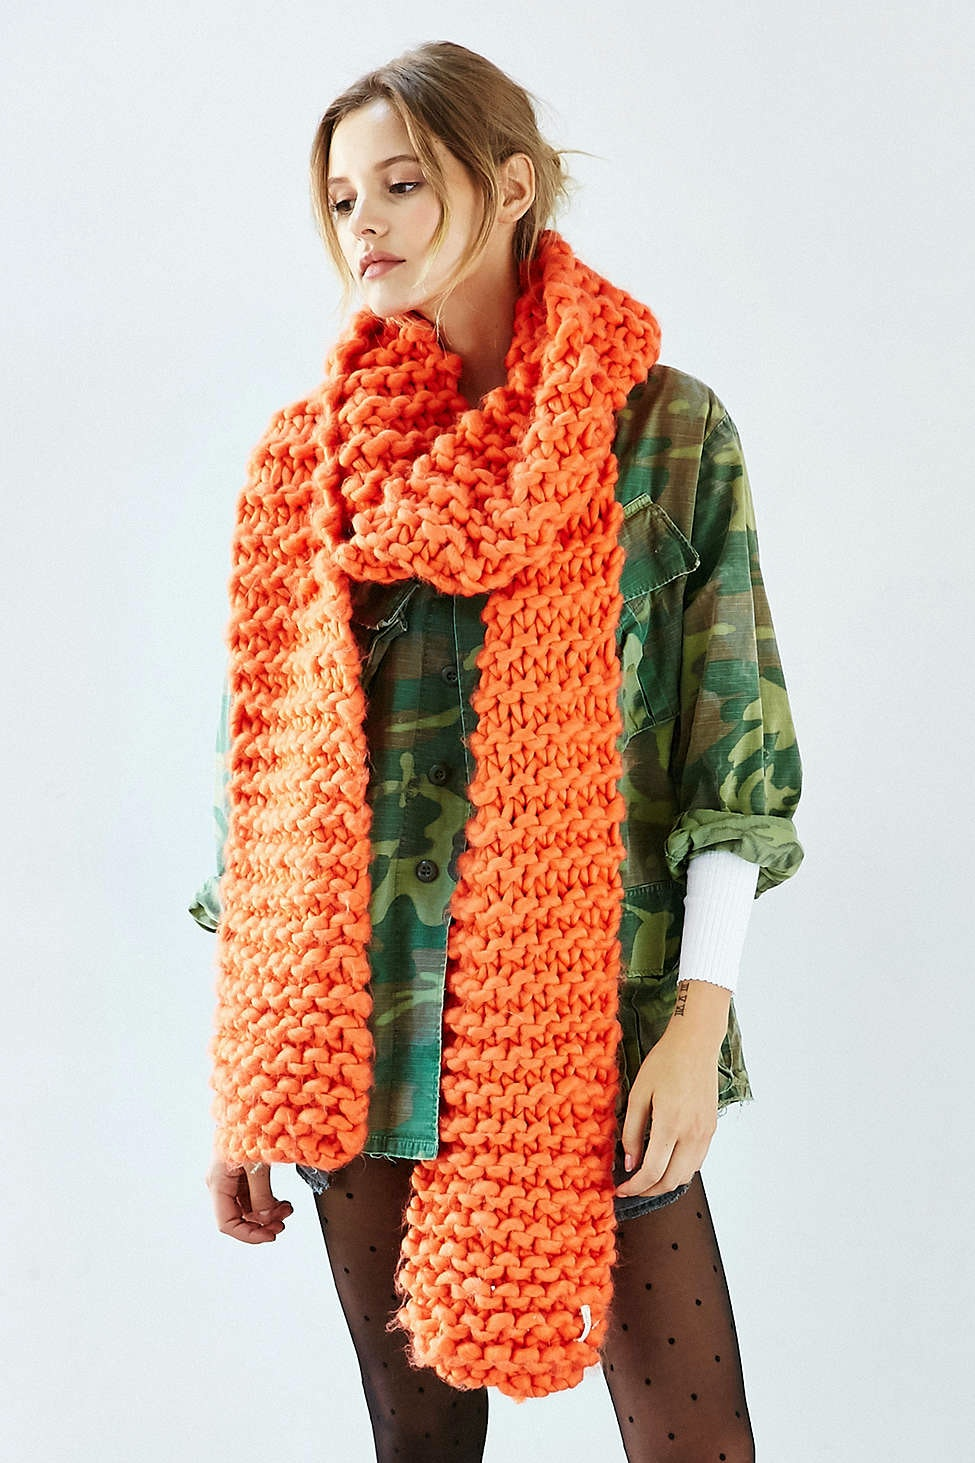 Watch - How to oversized an wear knit scarf video